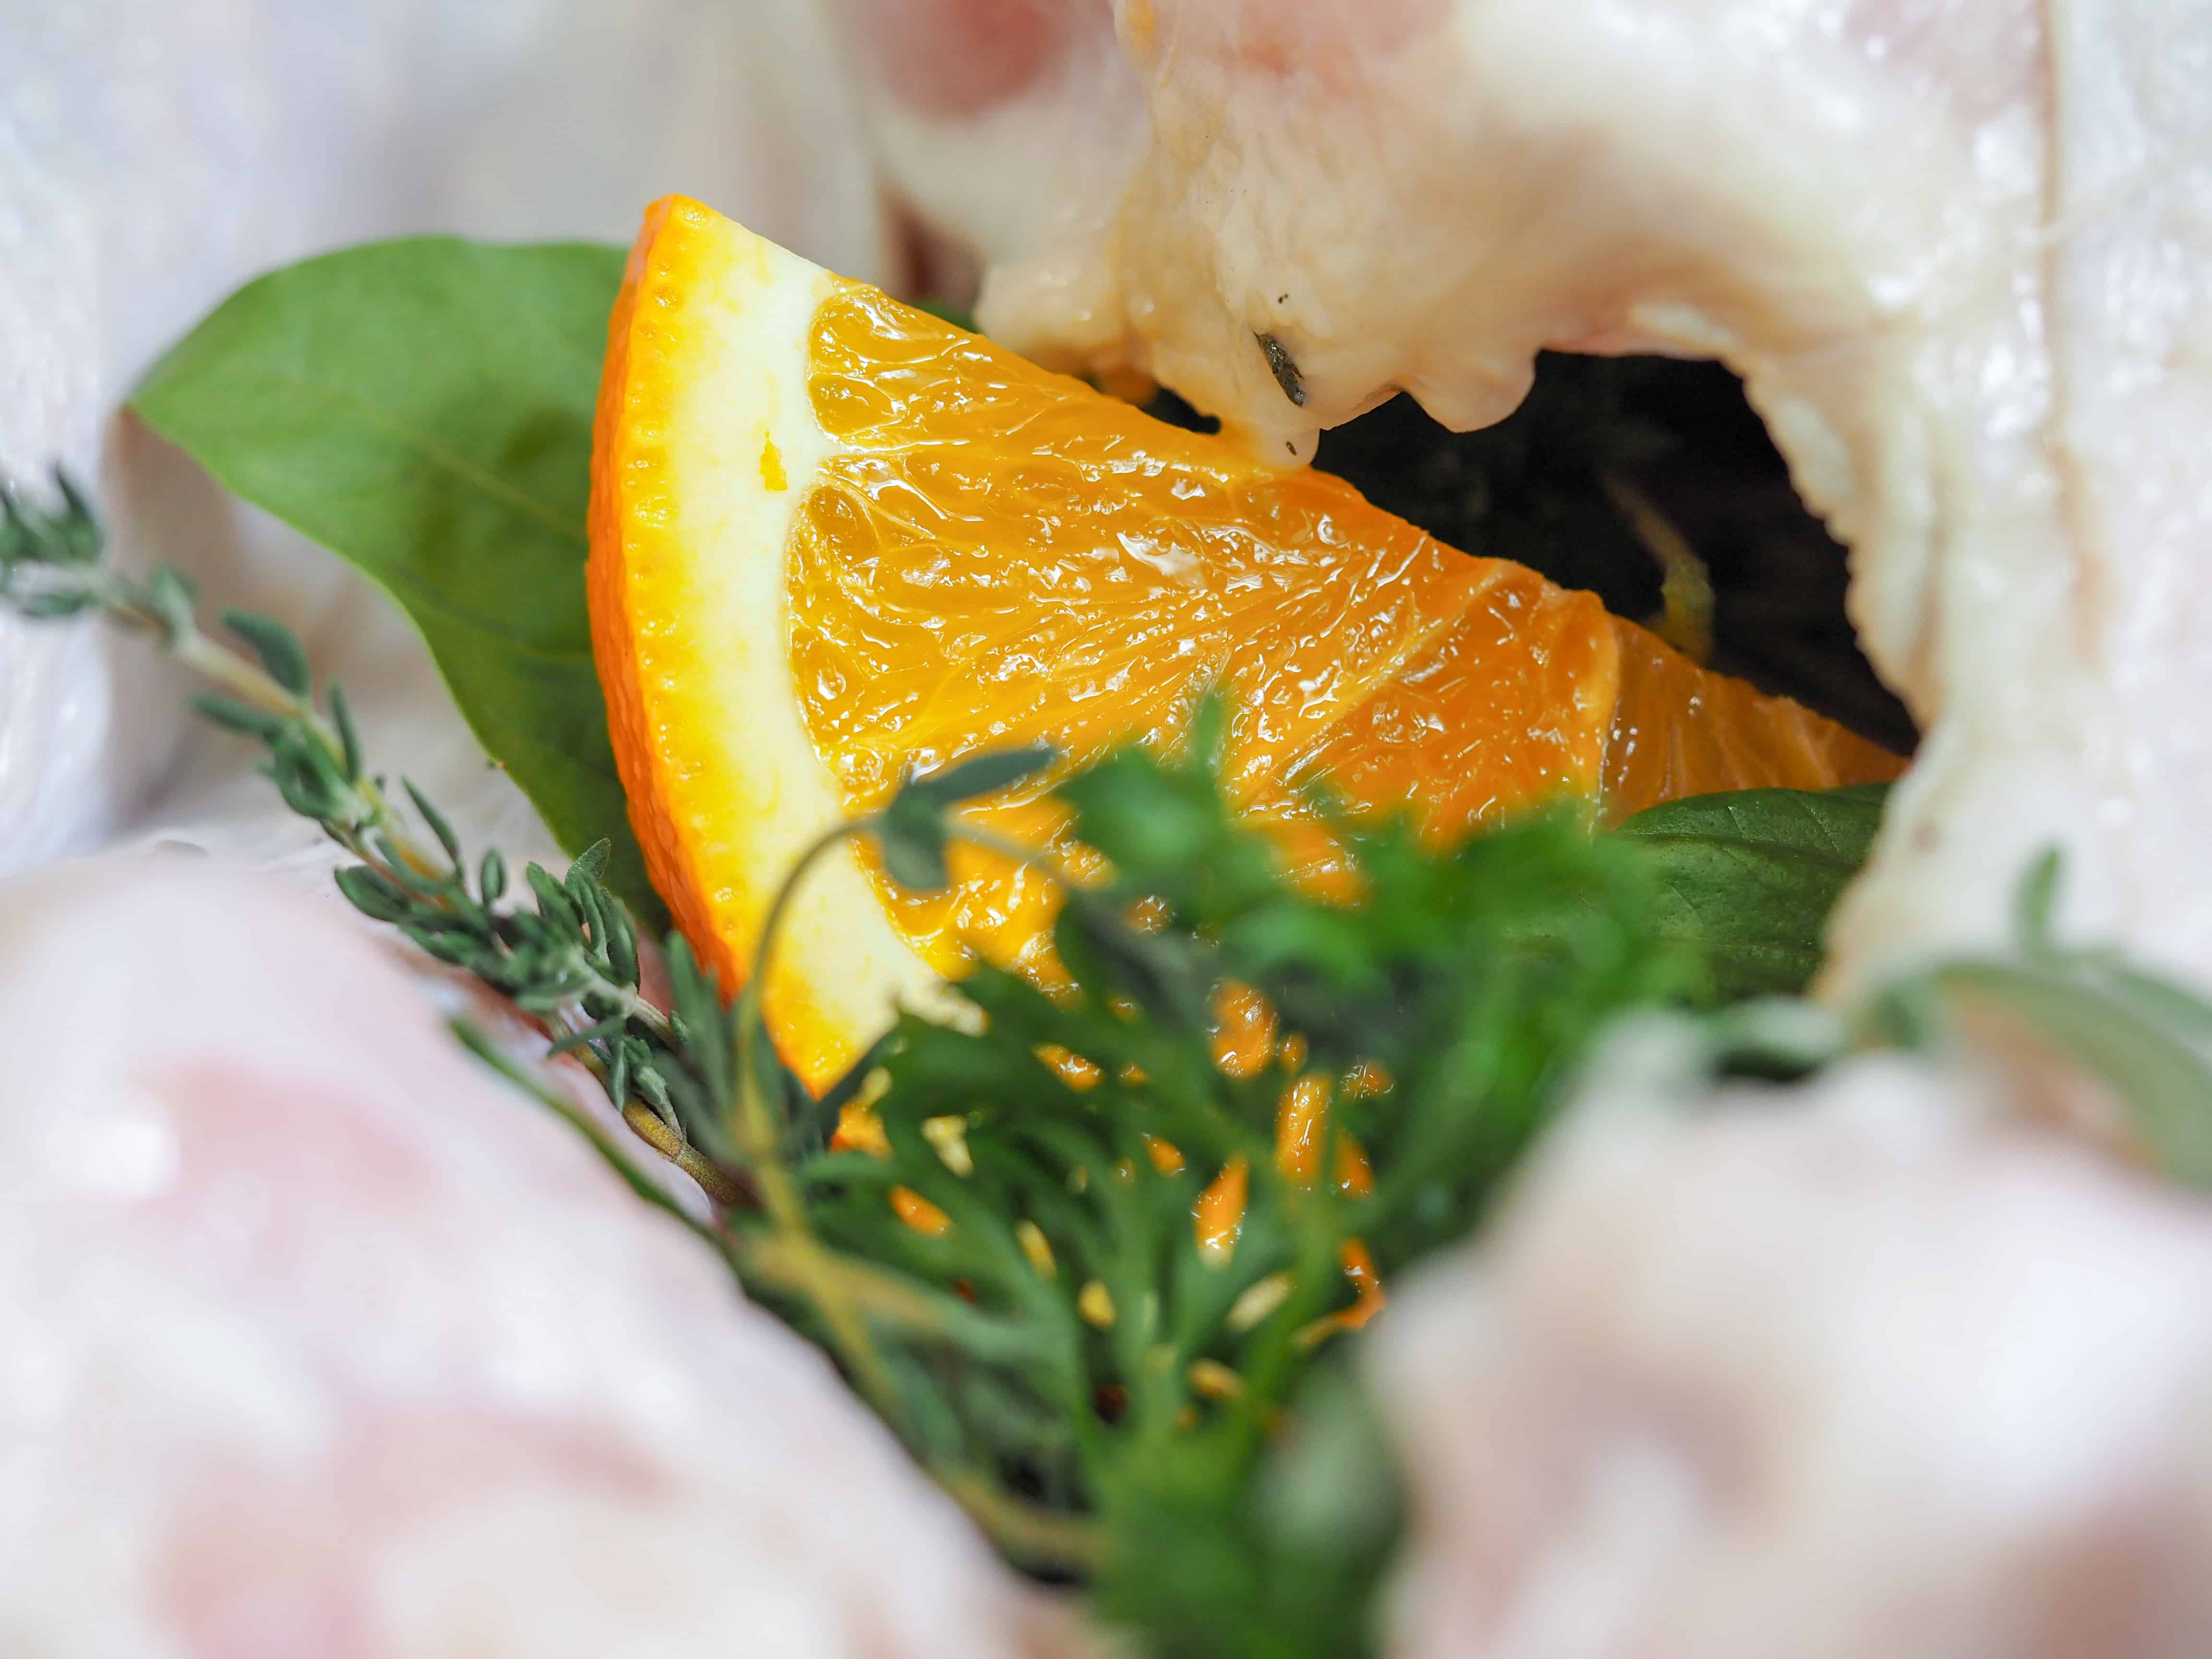 quartered orange and herbs stuffed in turkey cavity, close view